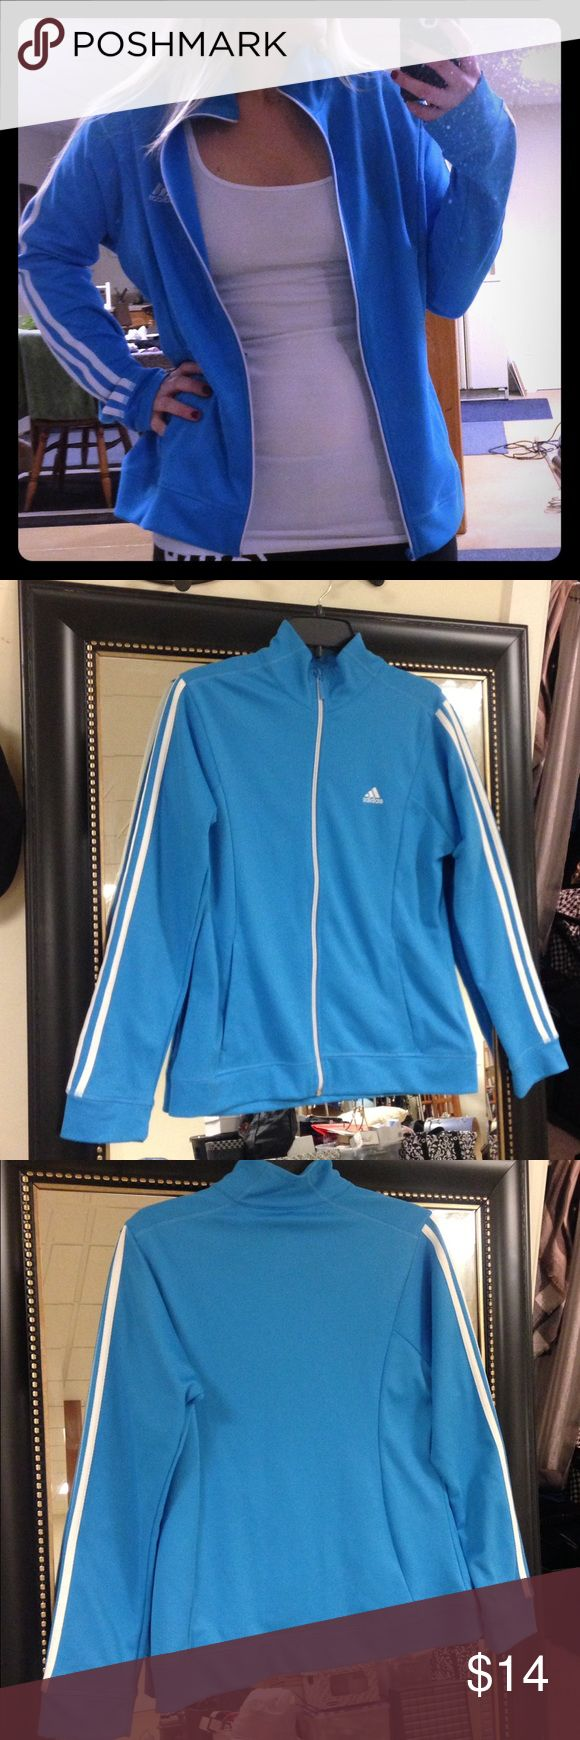 Adidas Track Jacket Like new, light blue and white, zip up track jacket. Two pockets. Looks like it's brand new. Size medium. 100% polyester. Adidas Jackets & Coats